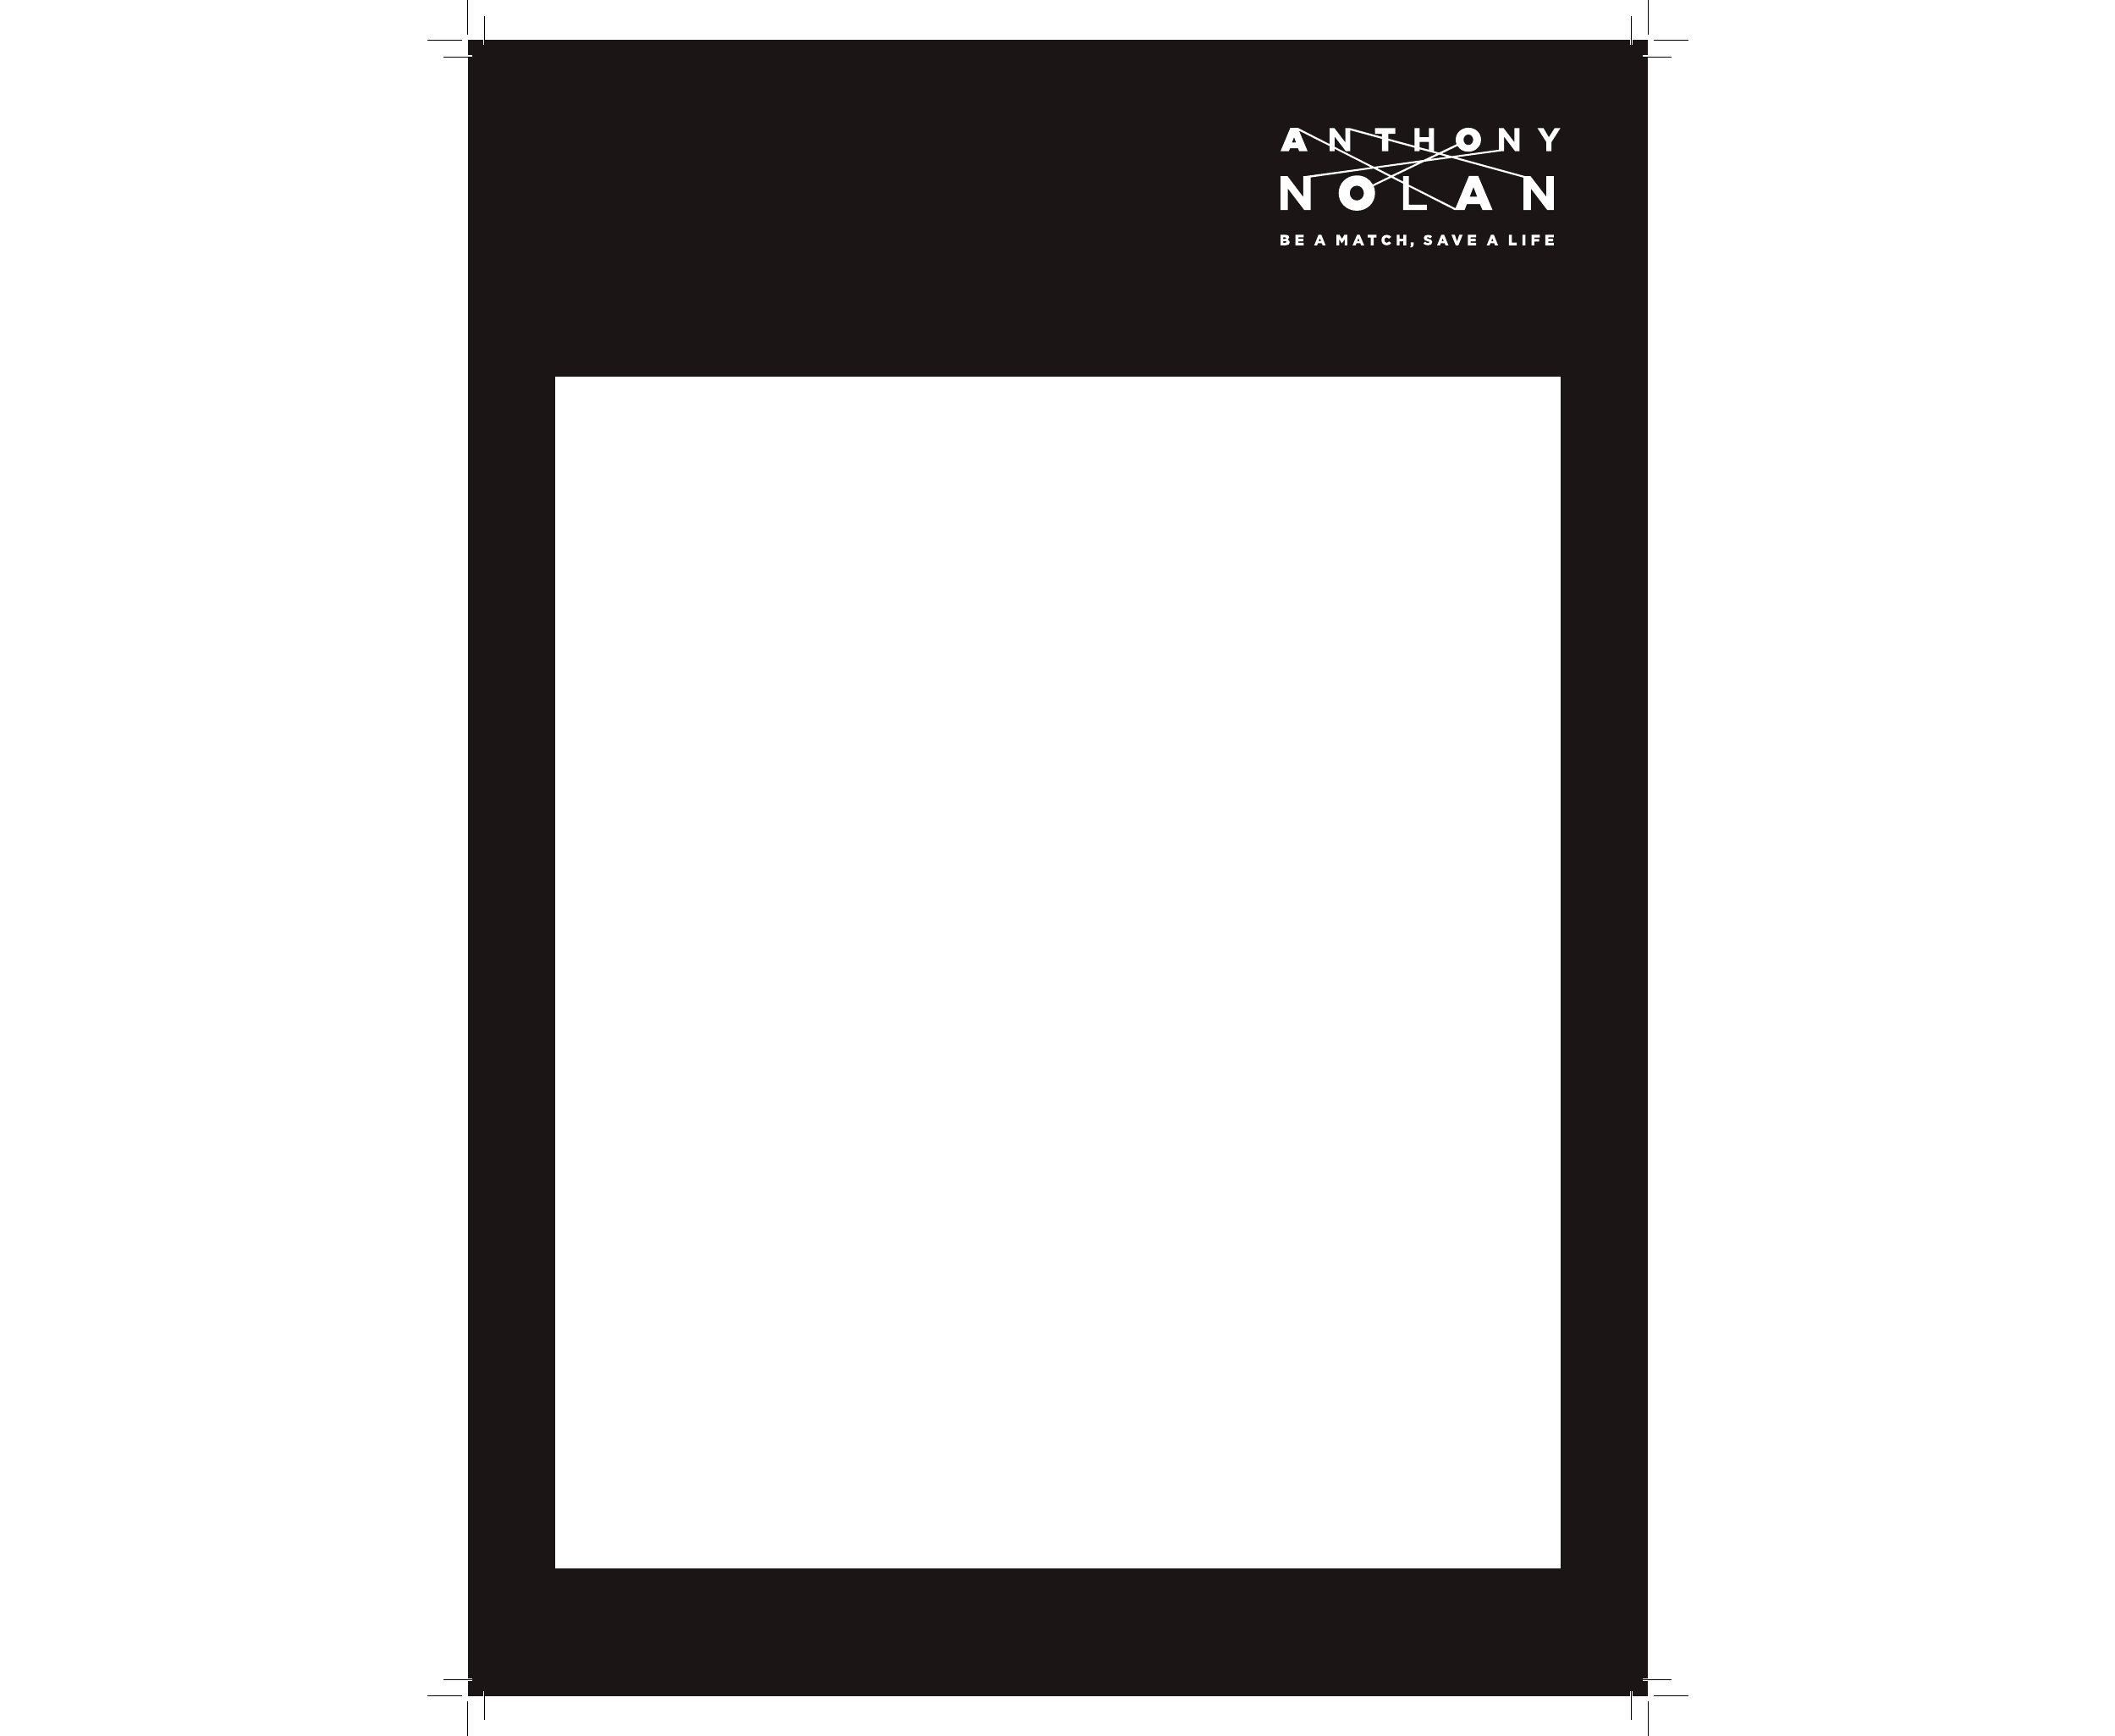 anthony nolan poster template free download